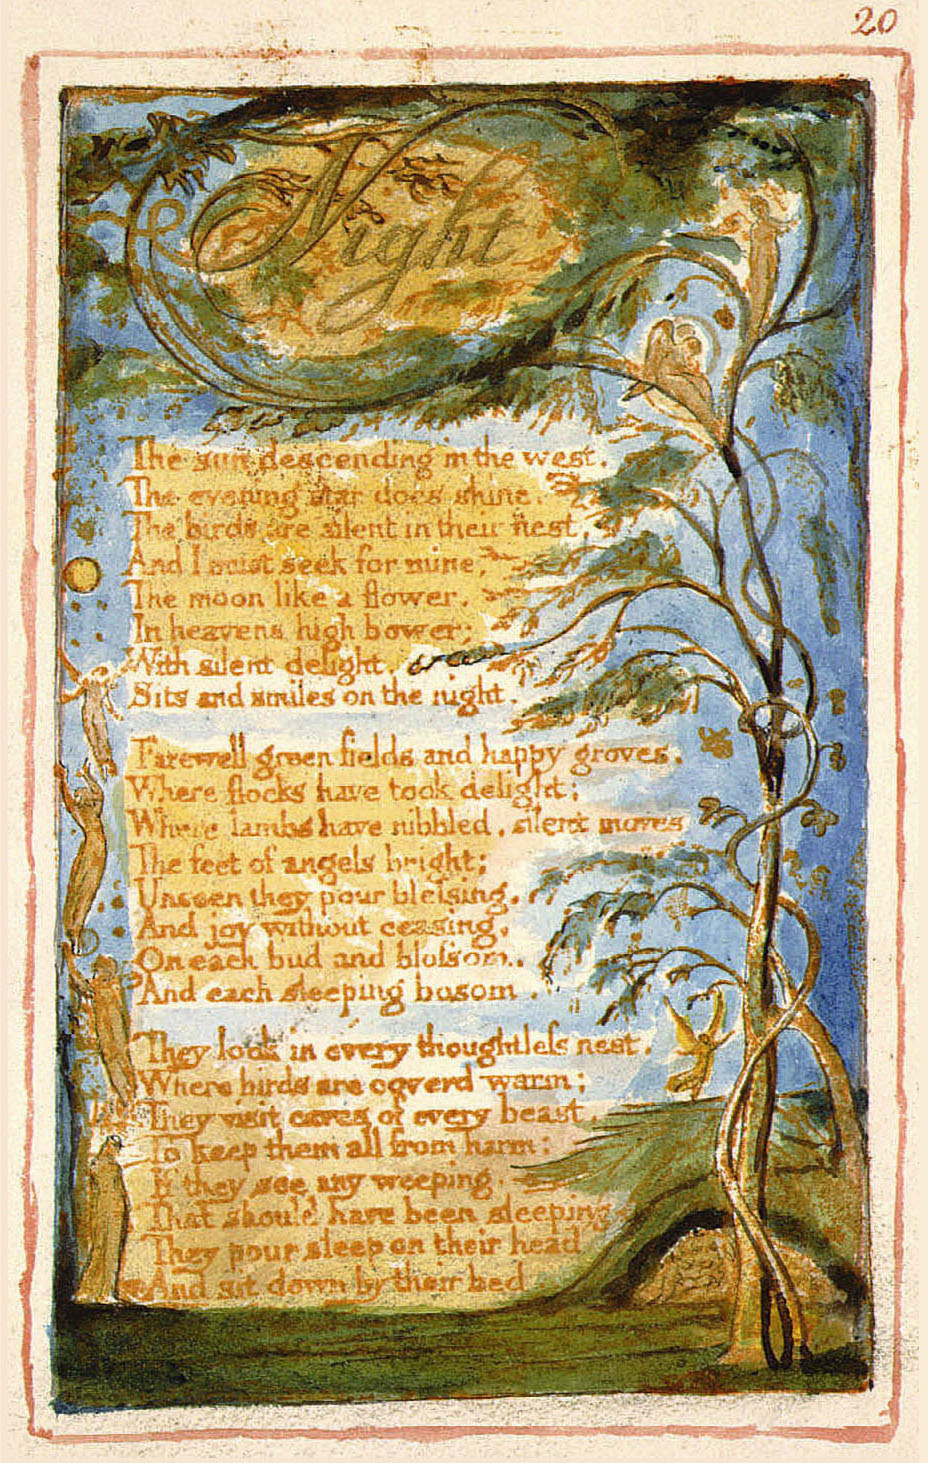 blake poems Introduction the notes which follow are intended for study and revision of a selection of blake's poems about the poet william blake was born on 28 november 1757, and died on 12 august 1827.